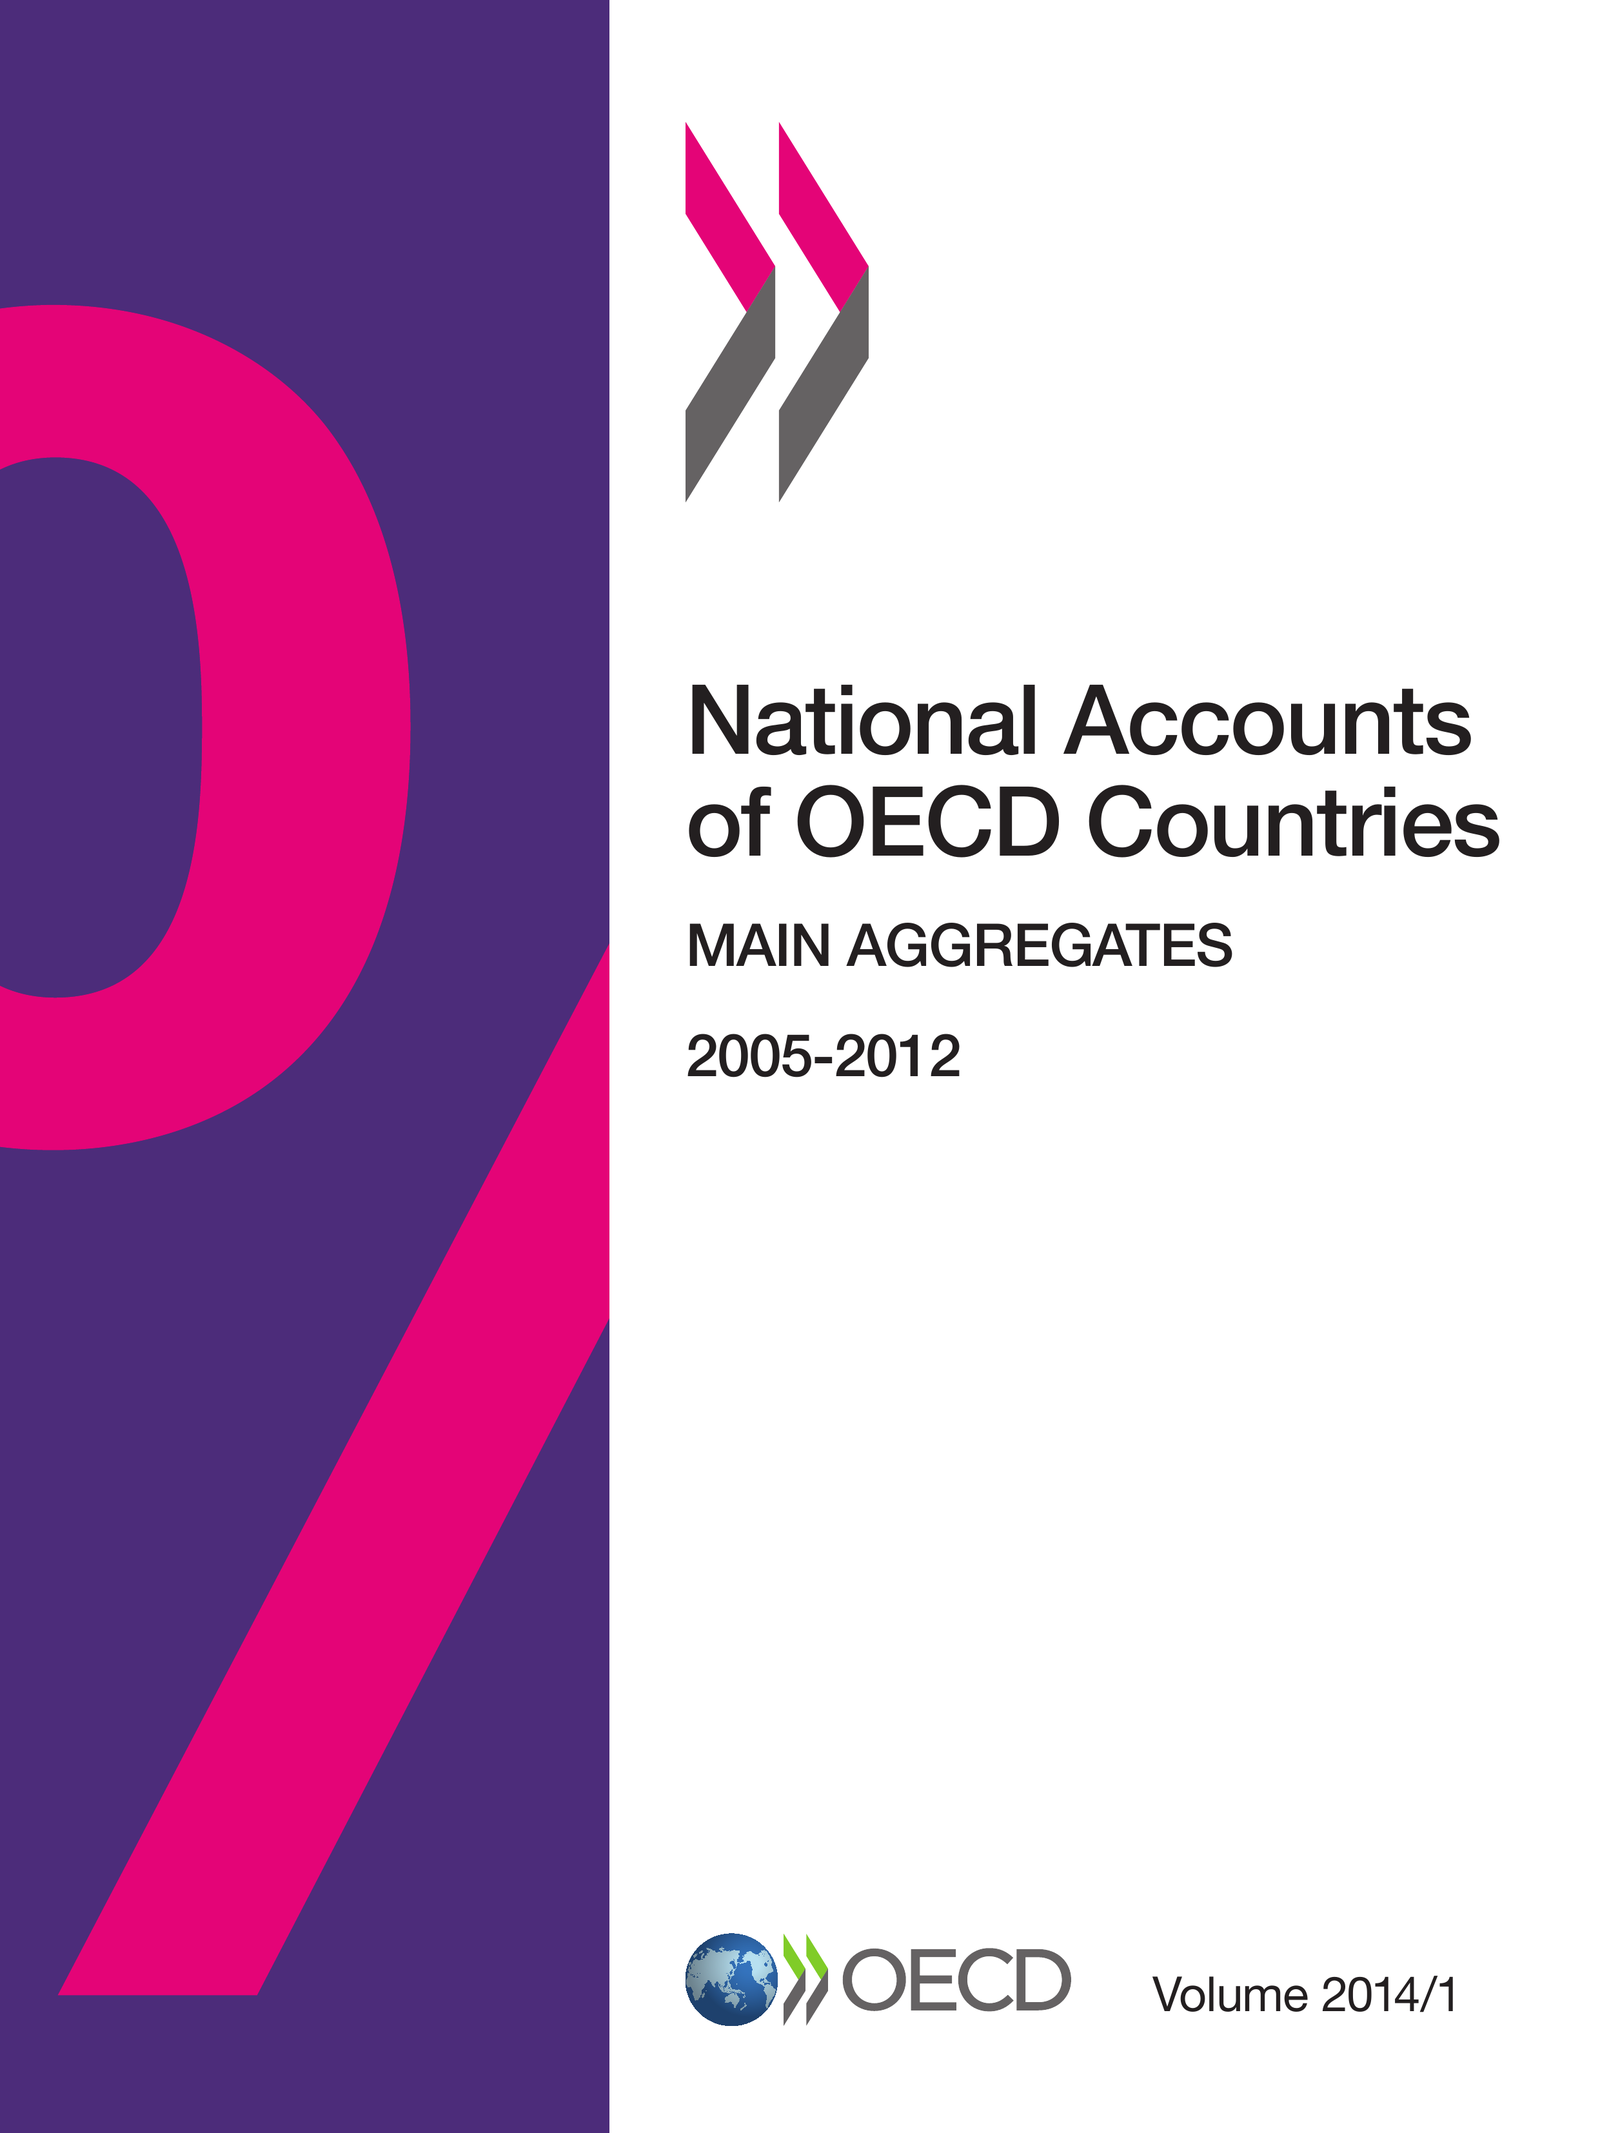 National Accounts of OECD Countries, Volume 2014 Issue 1